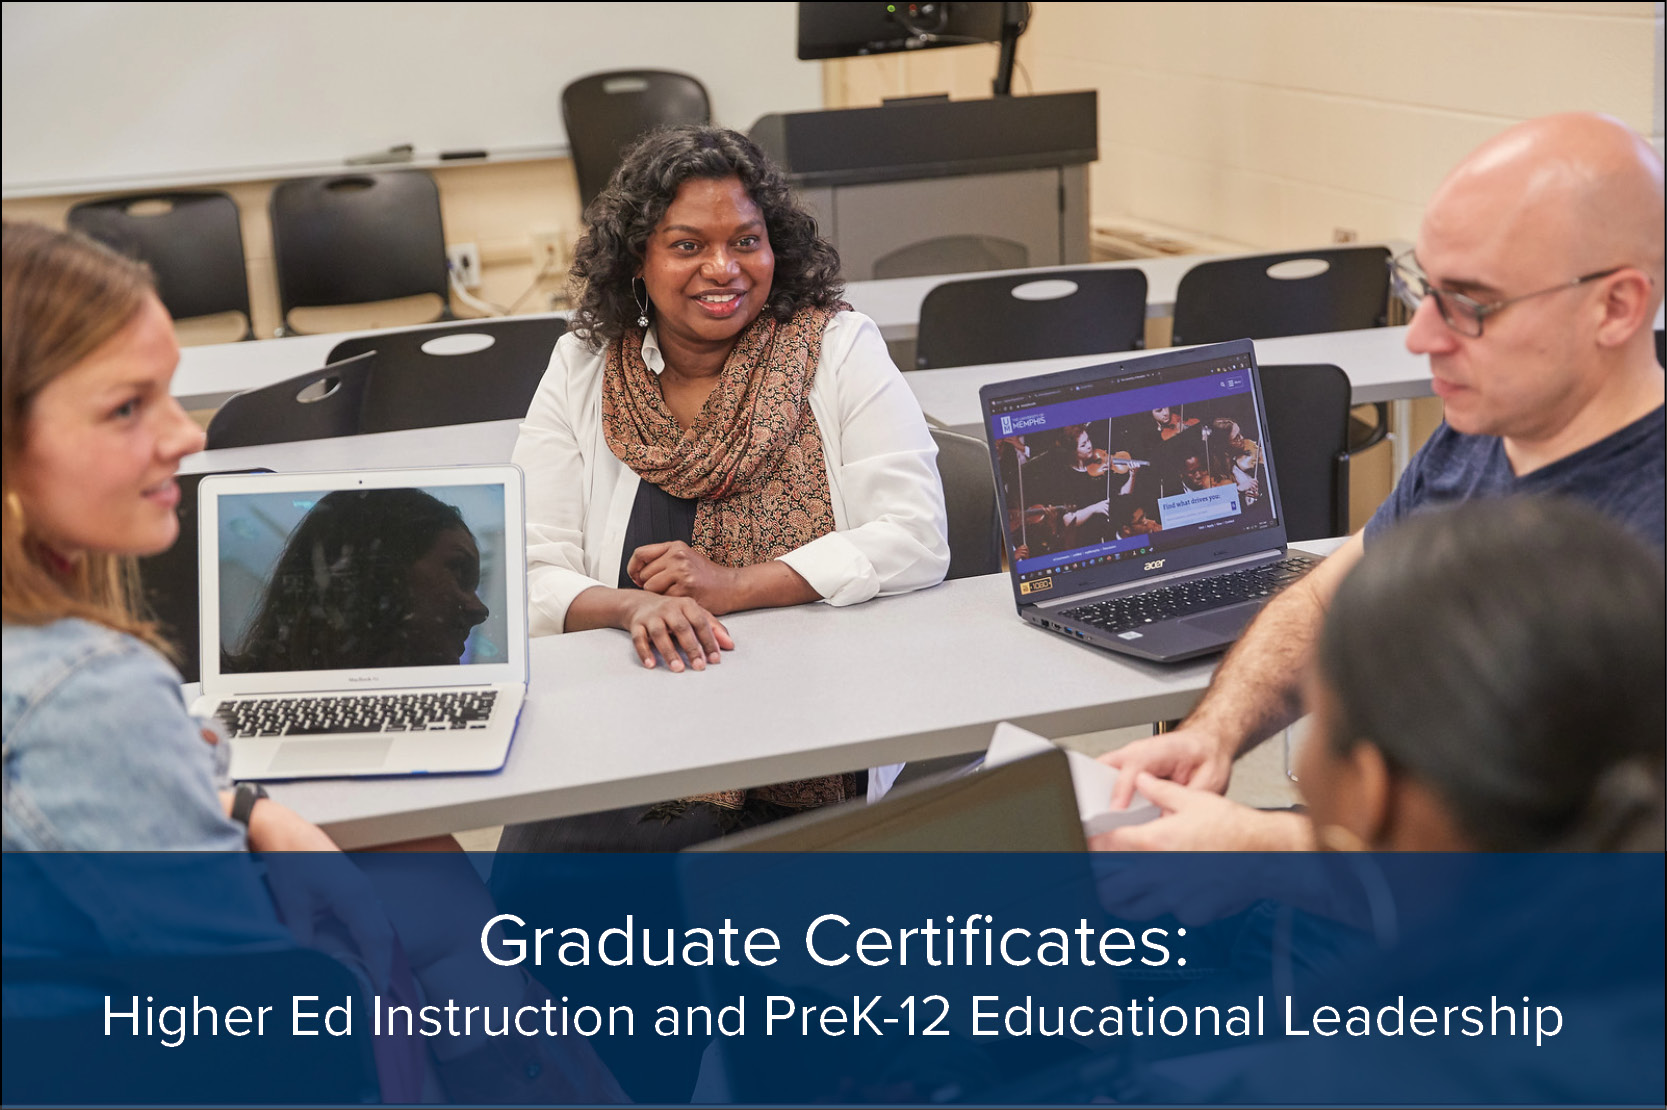 Graduate Certificates: Higher Ed Instruction and Prek-12 Leadership